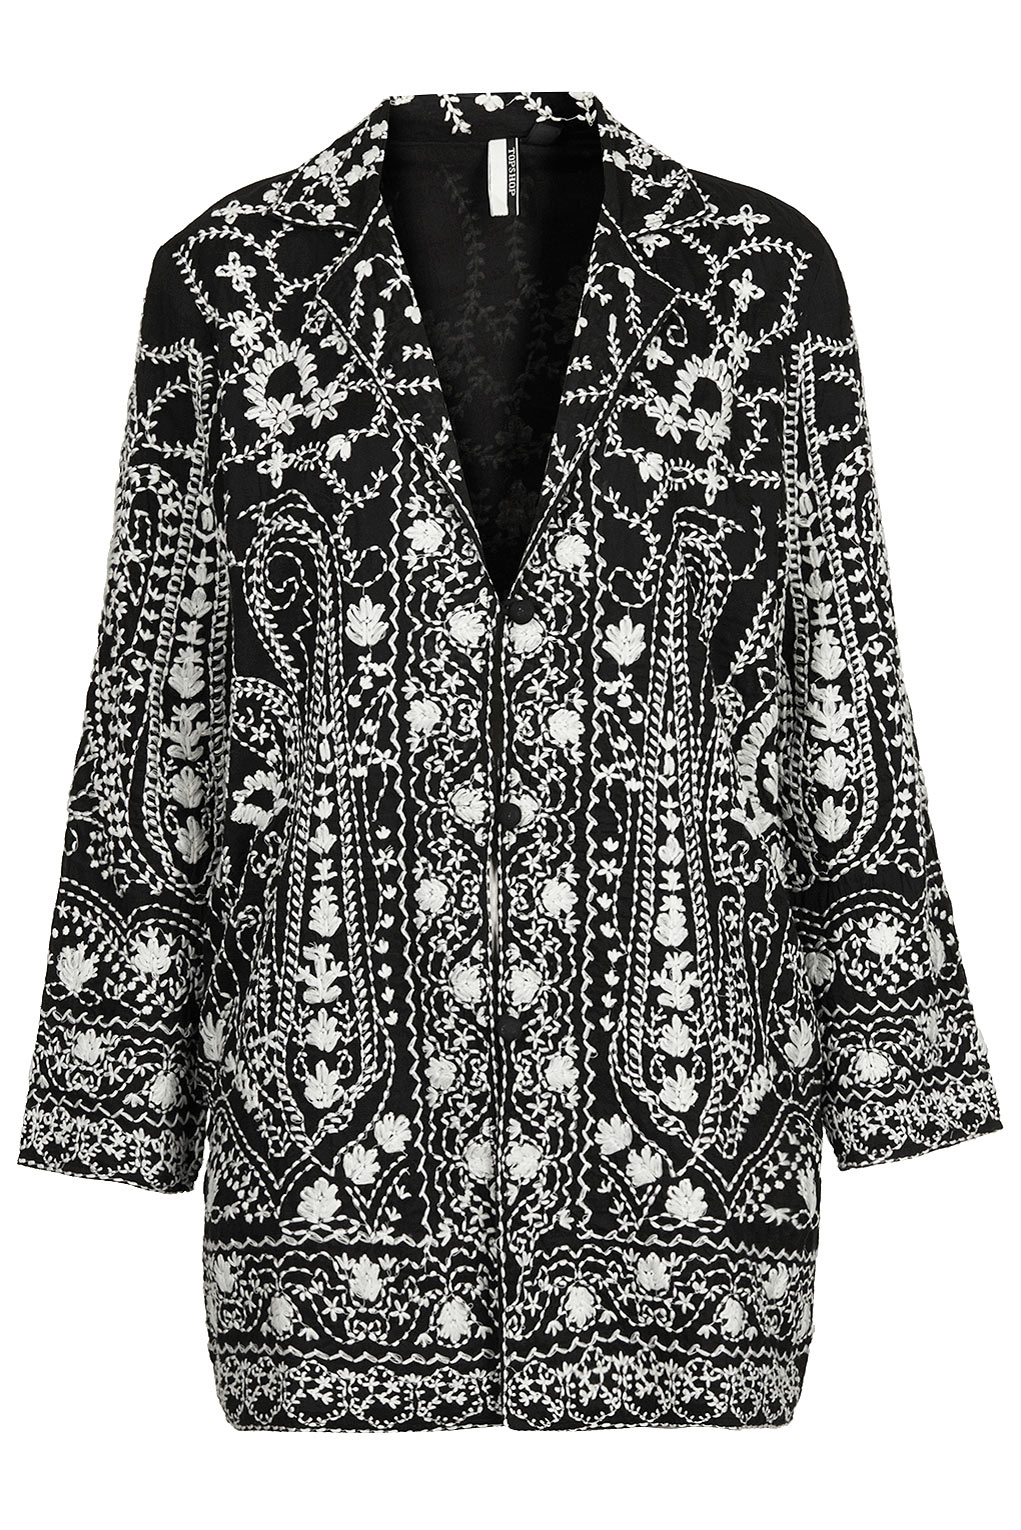 Lyst Topshop Womens Premium Embroidered Duster Jacket